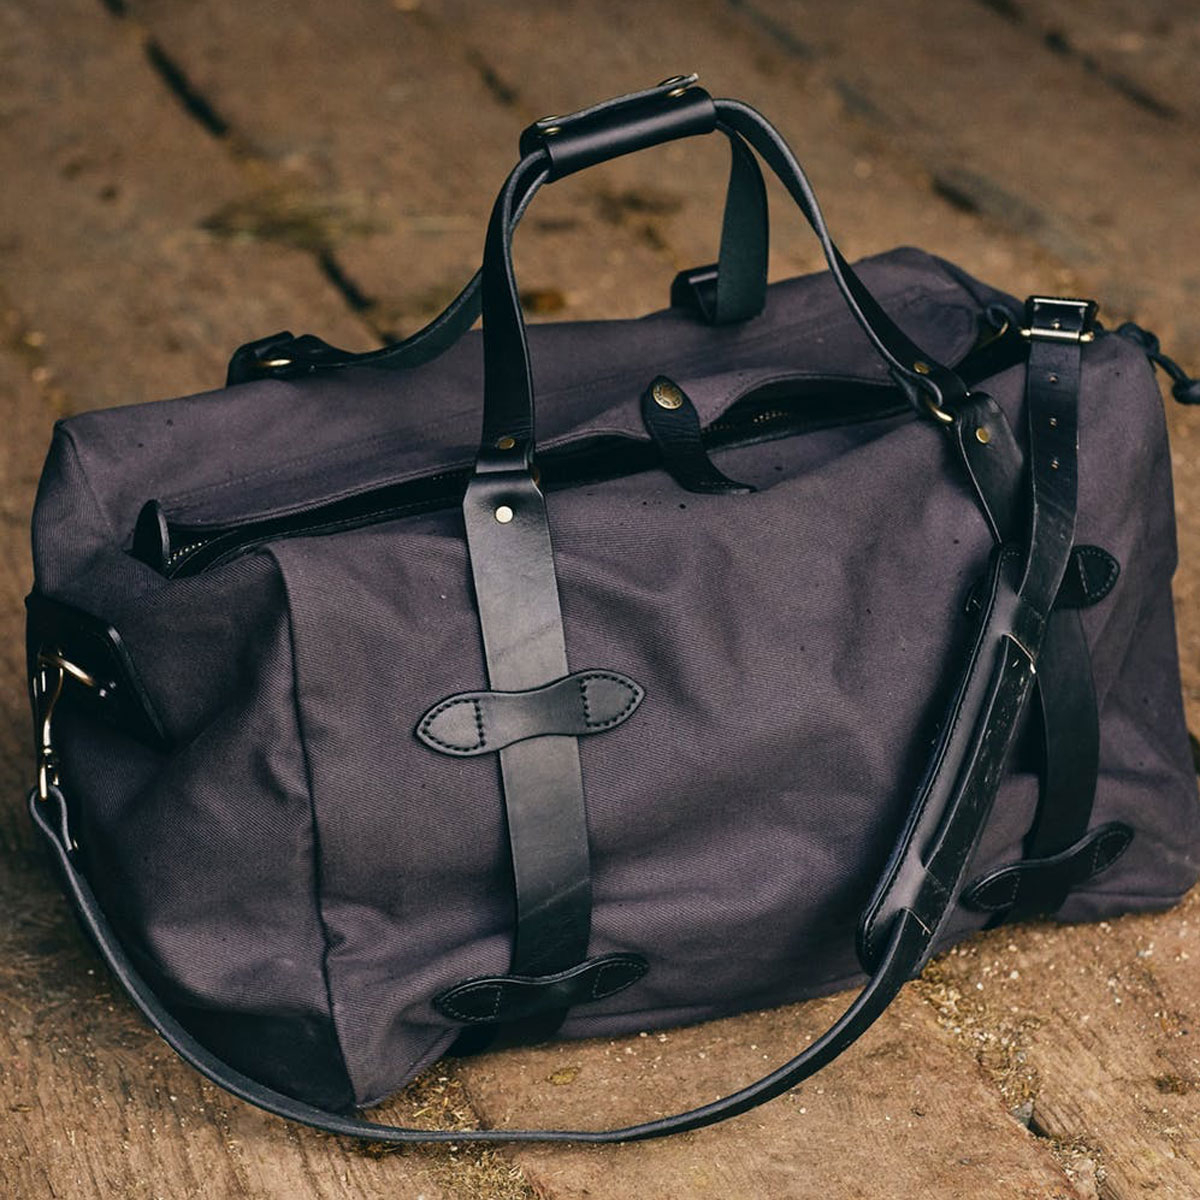 Filson Duffle Medium Cinder, perfect for a weekend away or a small business-trip